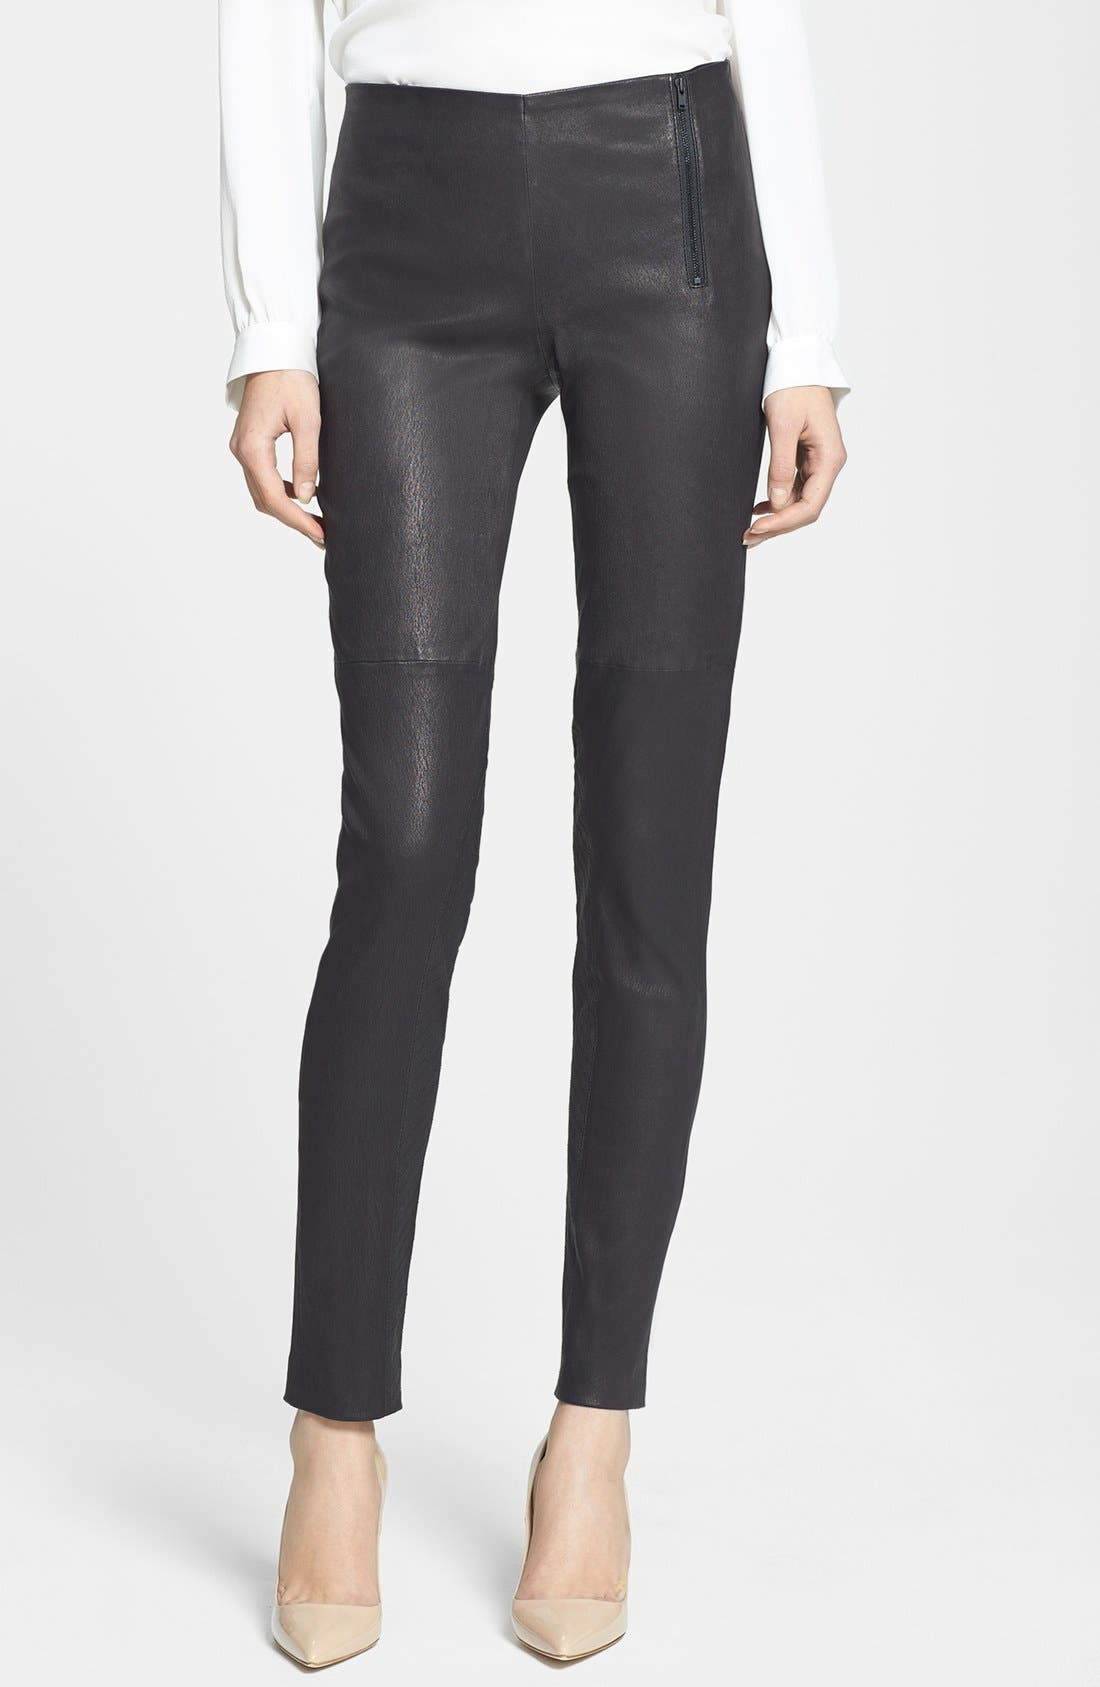 Alternate Image 1 Selected - Theory 'Redell L.' Leather Skinny Pants